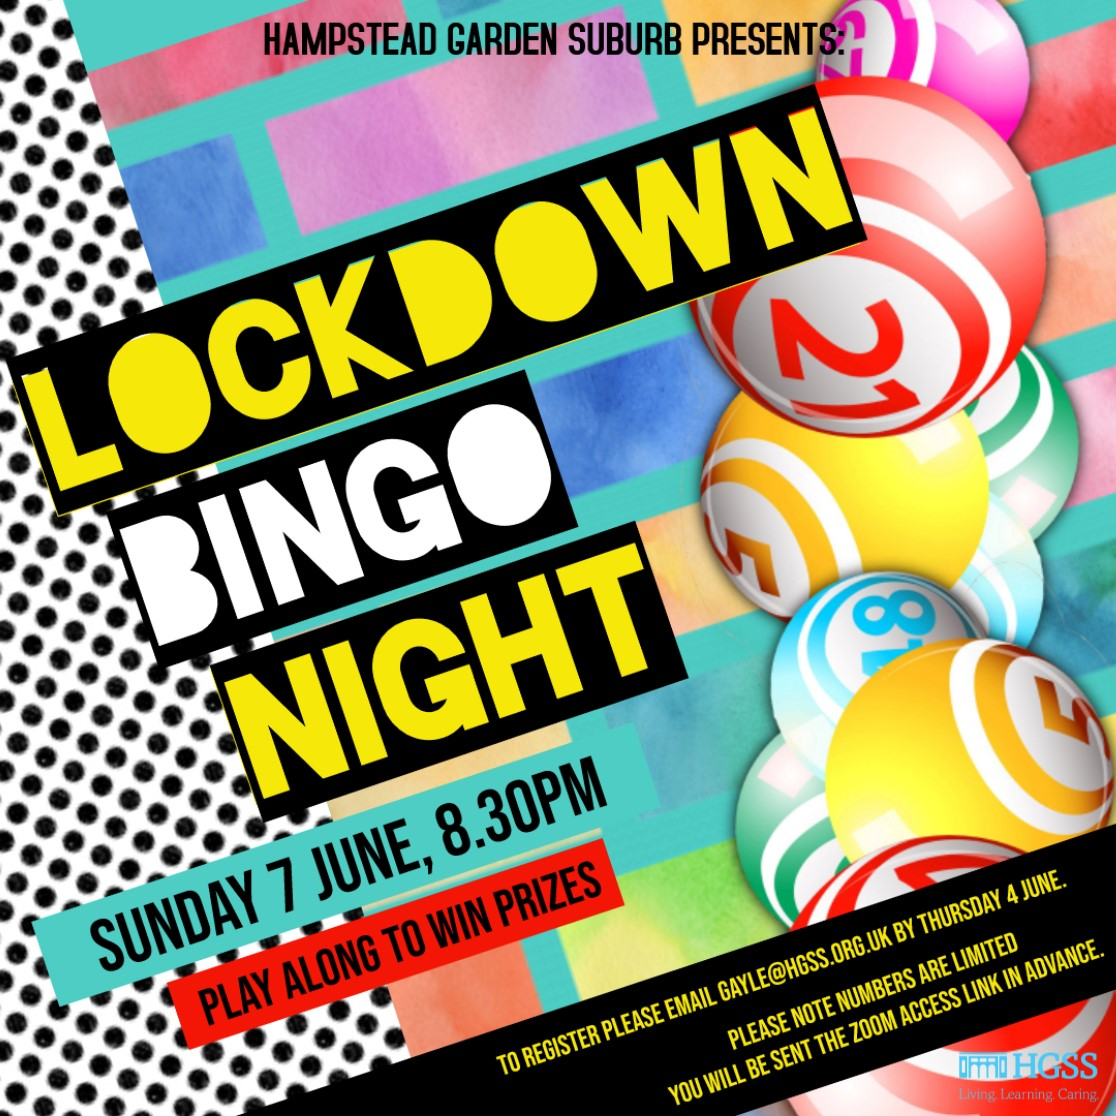 HGSS Lockdown Bingo Night @ Online (Contact Gayle for link)